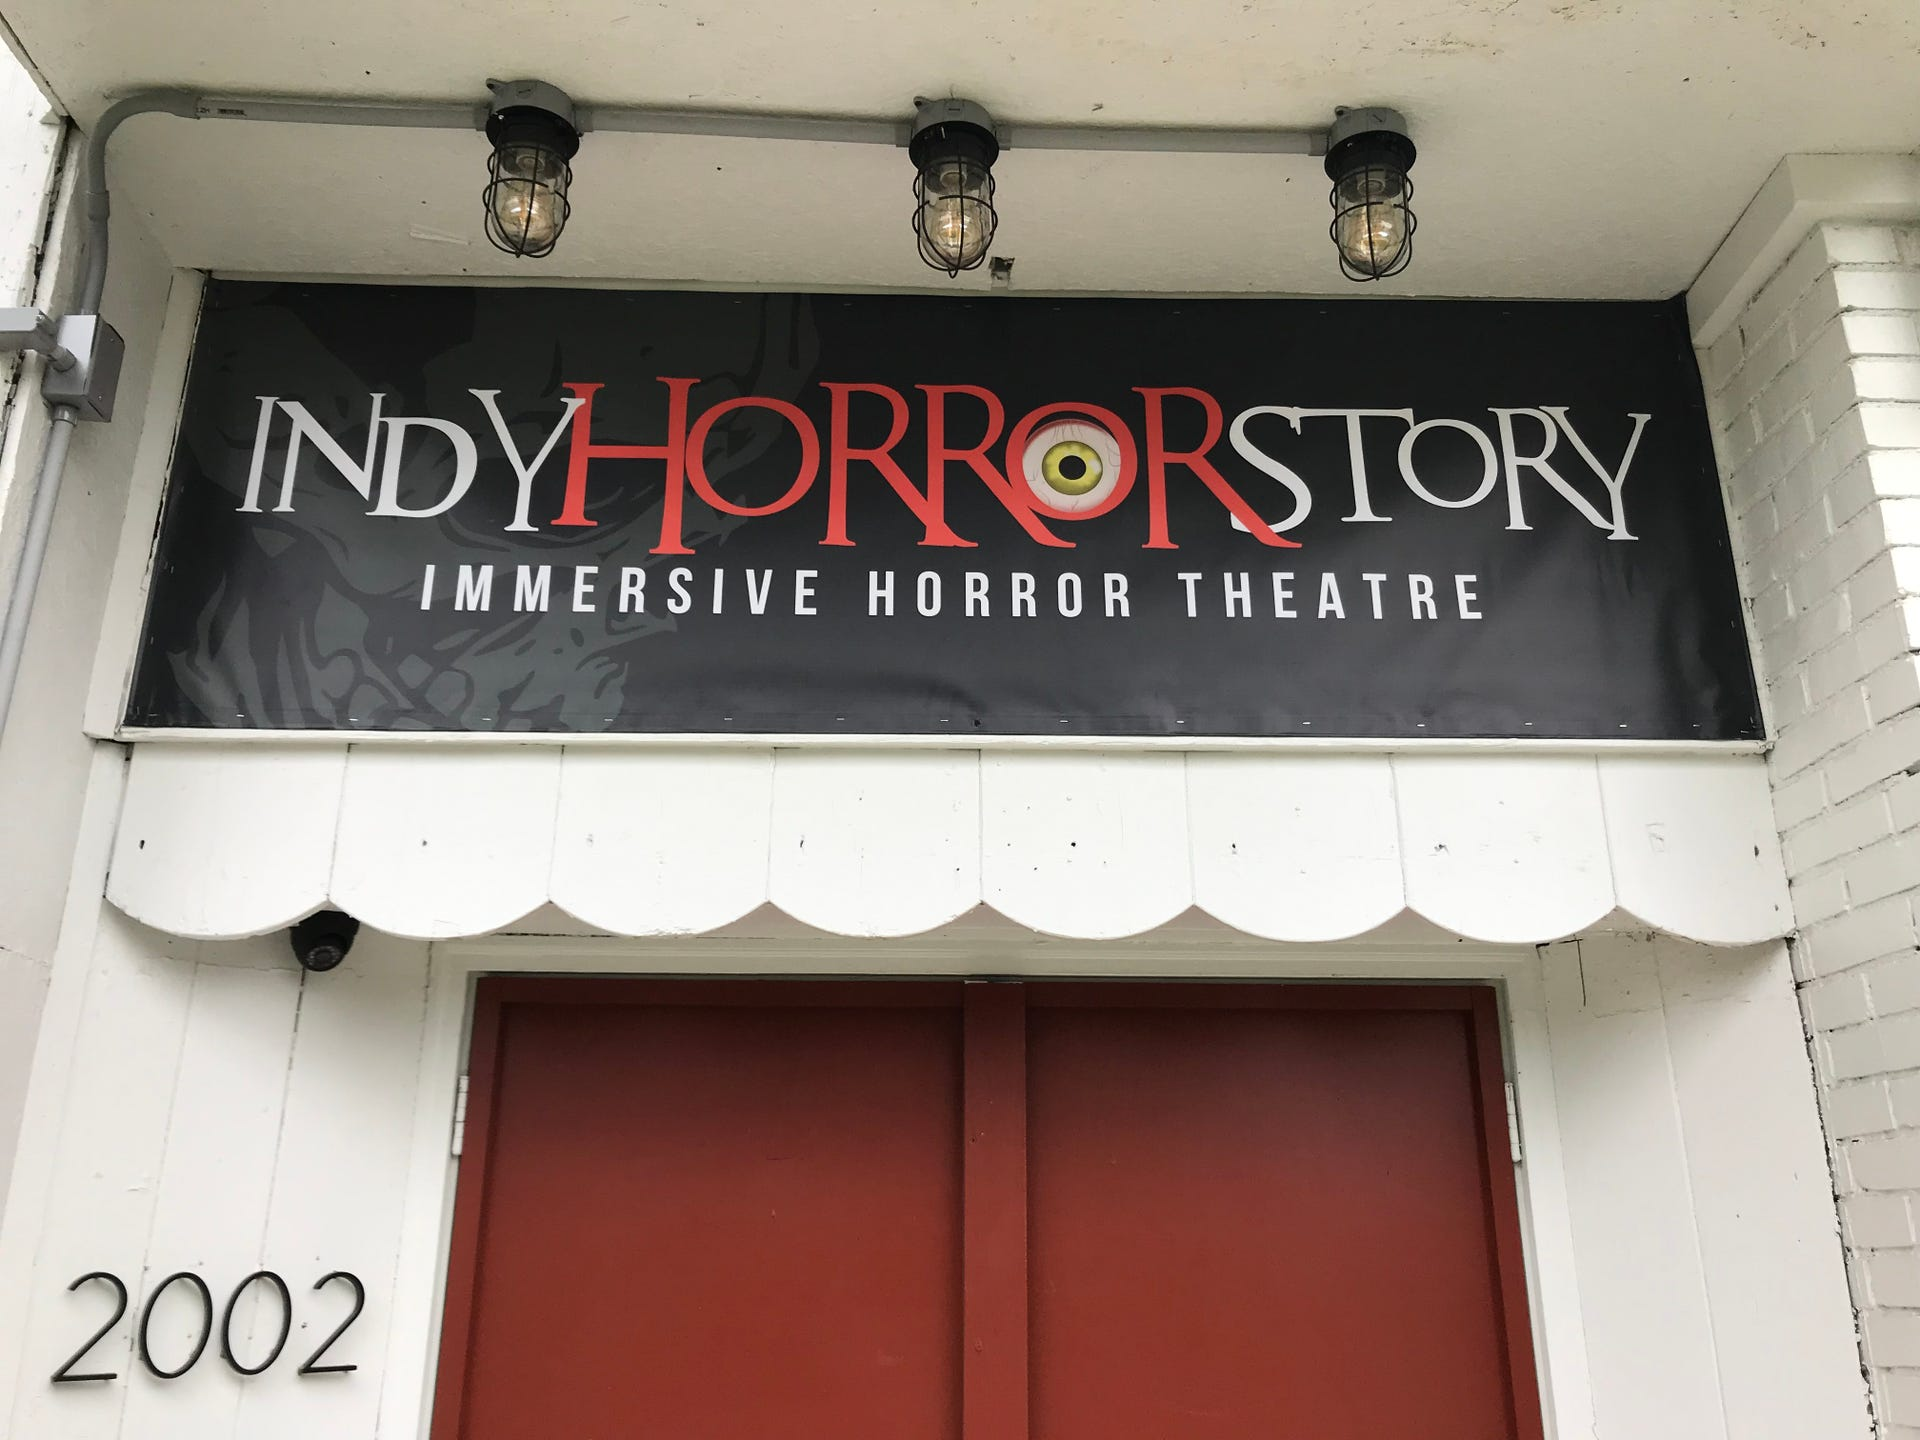 Indy Horror Story: A blend of theater, escape rooms and a